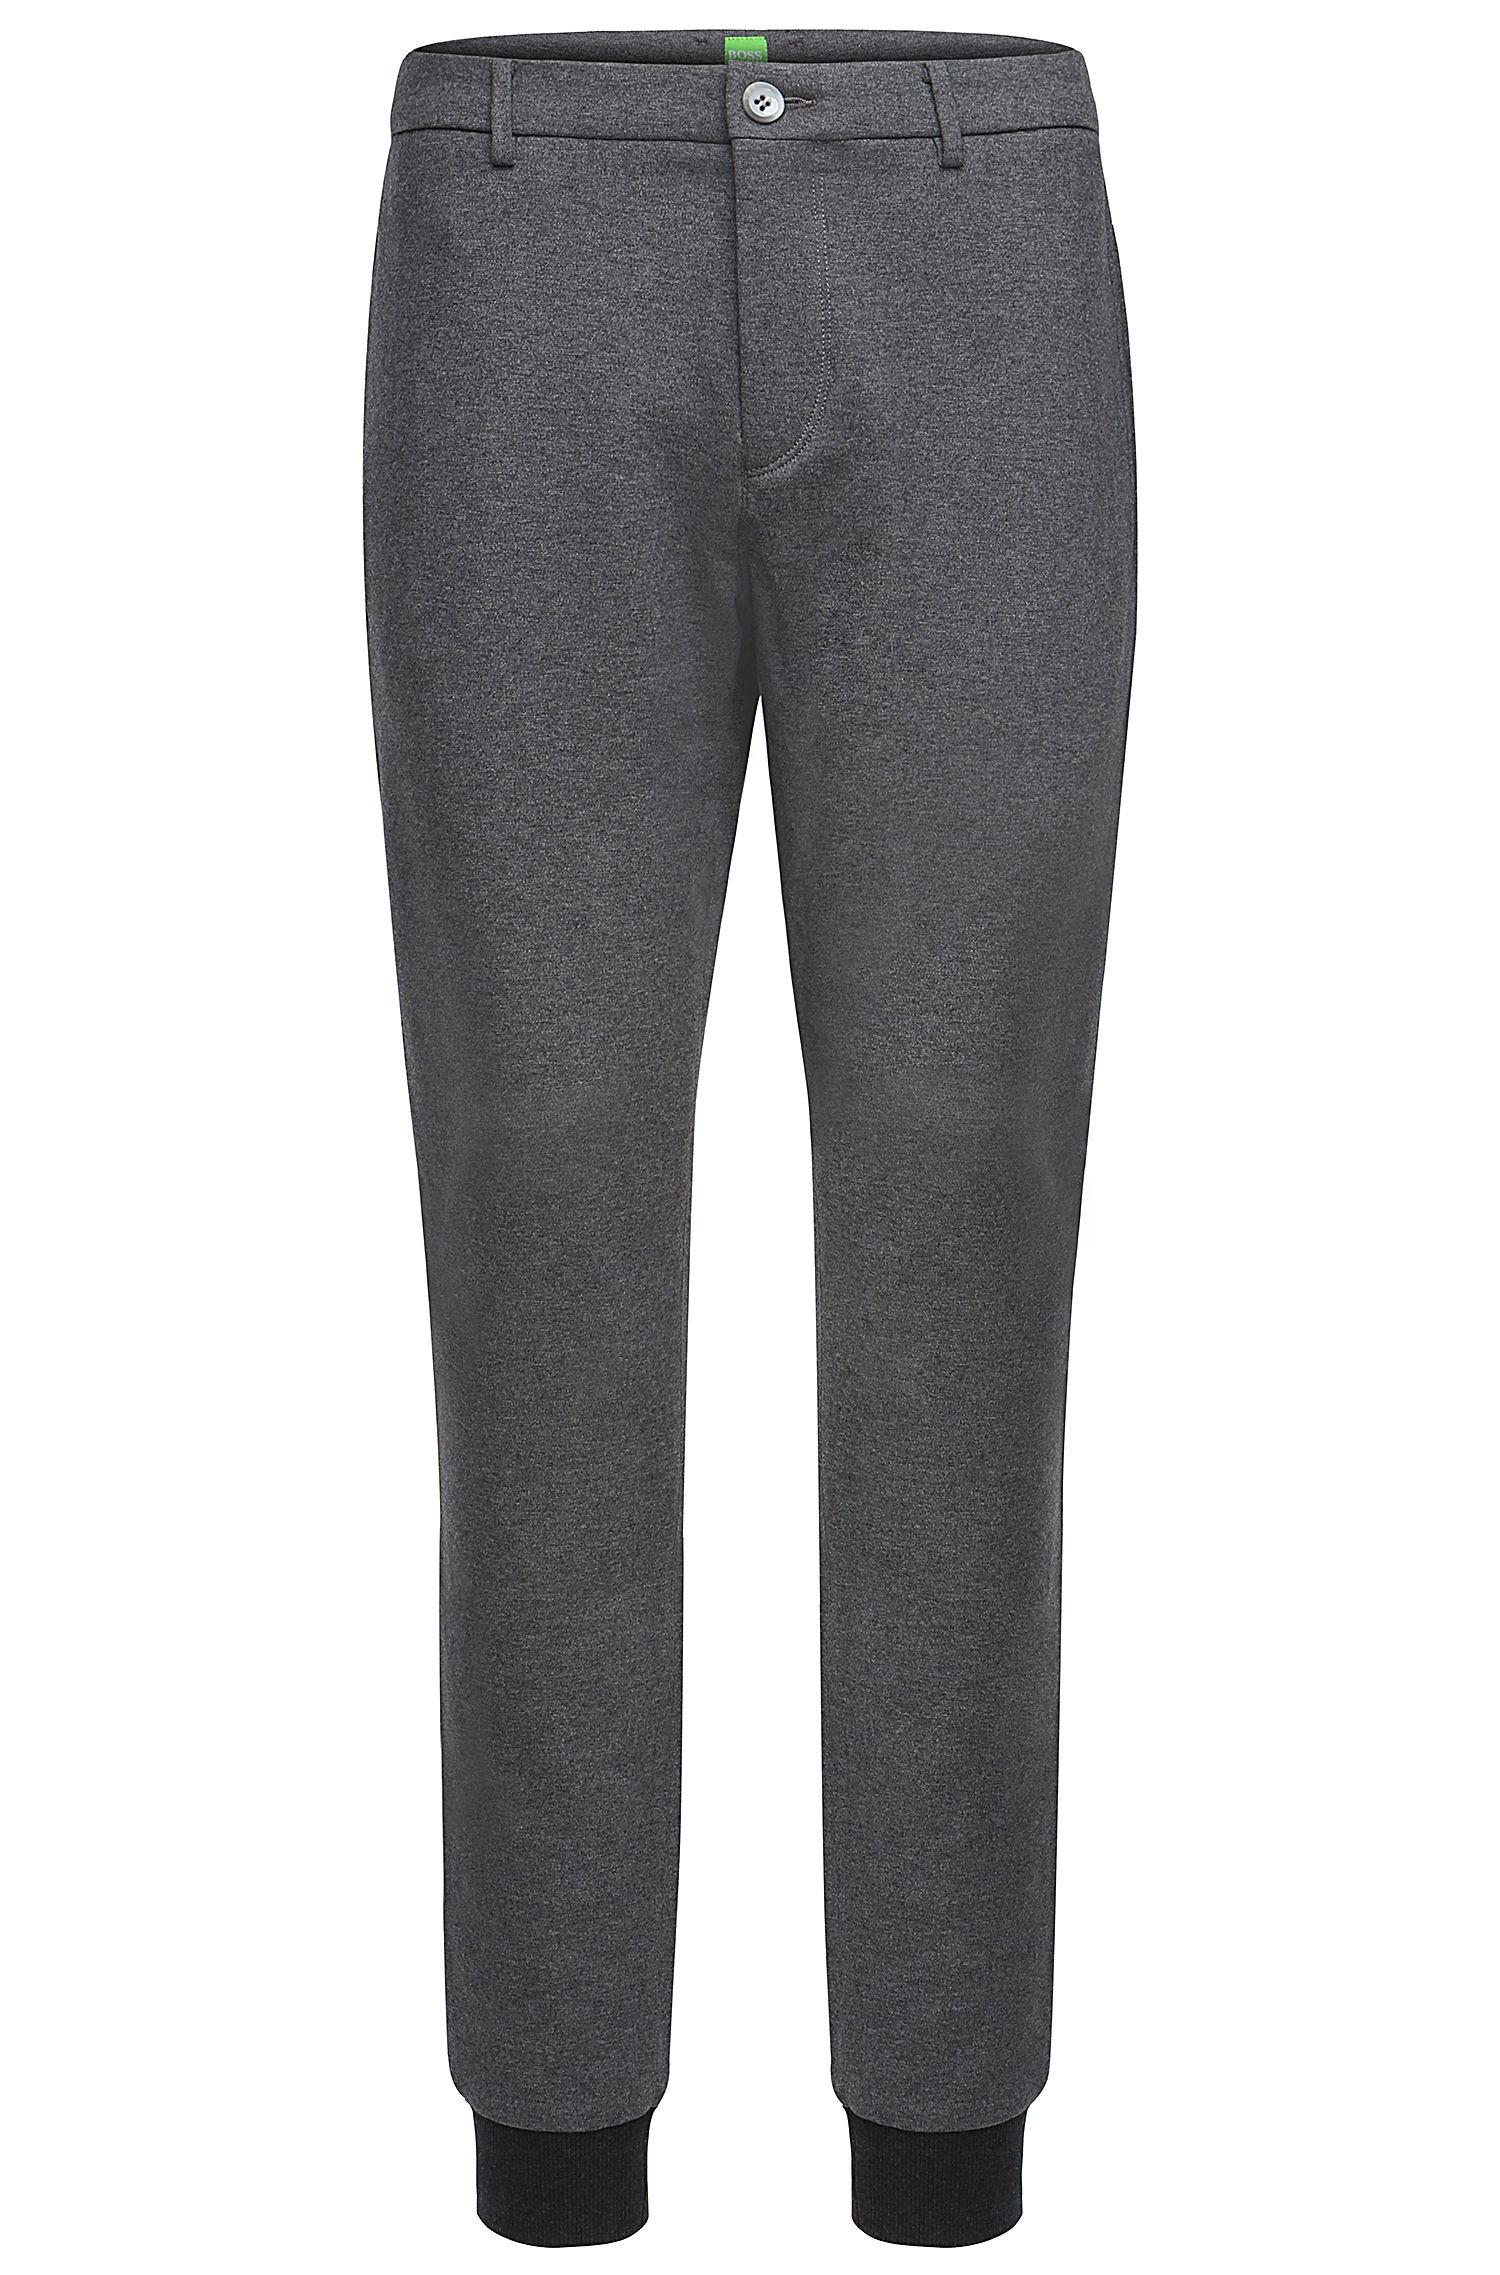 'Lukes' | Slim Fit, Stretch Cotton Jersey Pants